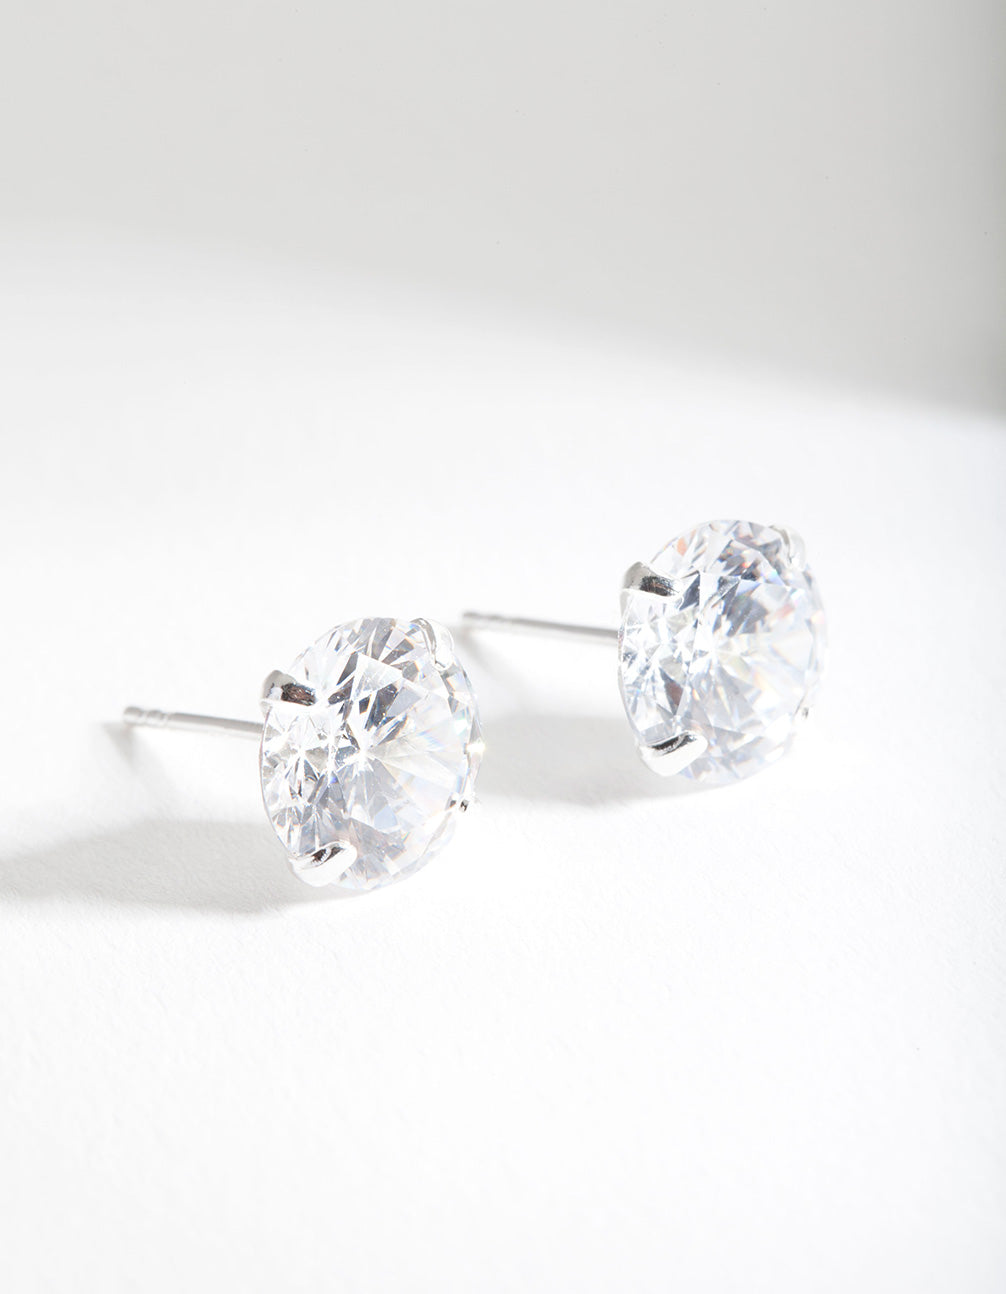 Sterling Silver 3 Carat Cubic Zirconia Stone Earring